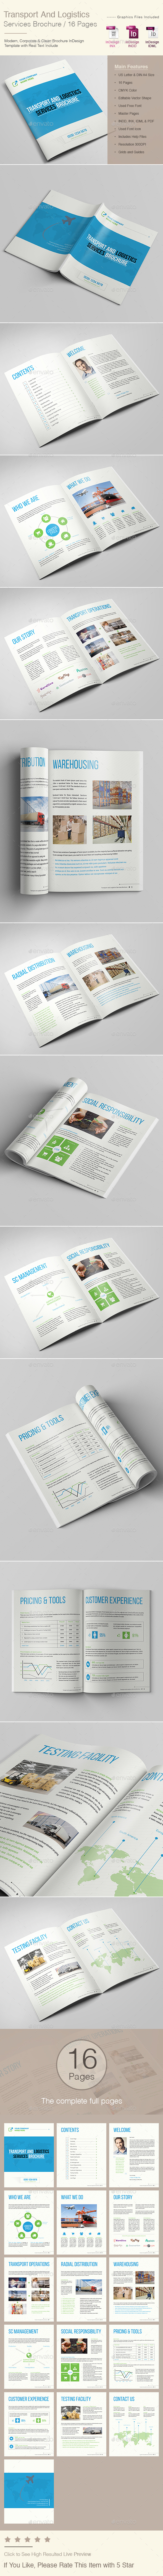 Transport And Logistics Services Brochure - Corporate Brochures